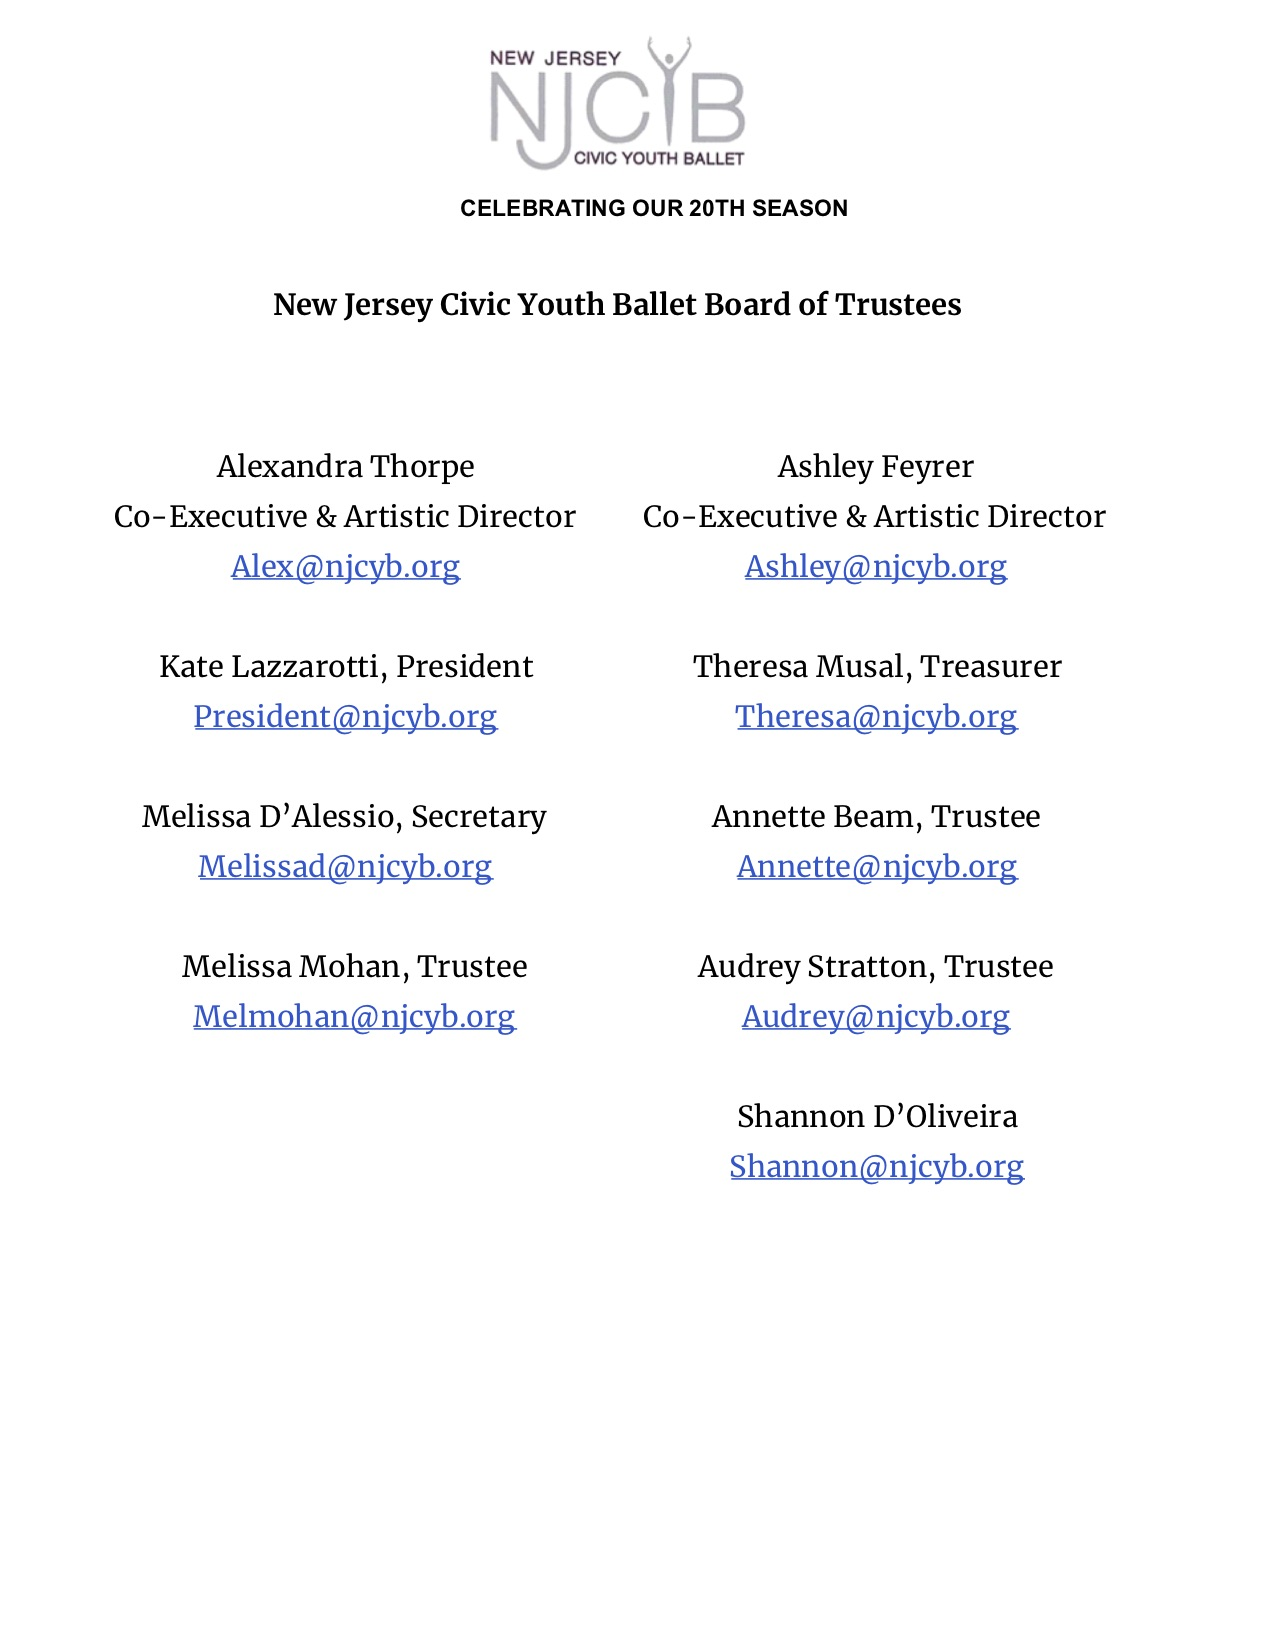 2019 New Jersey Civic Youth Ballet Board of Trustees-2.jpg